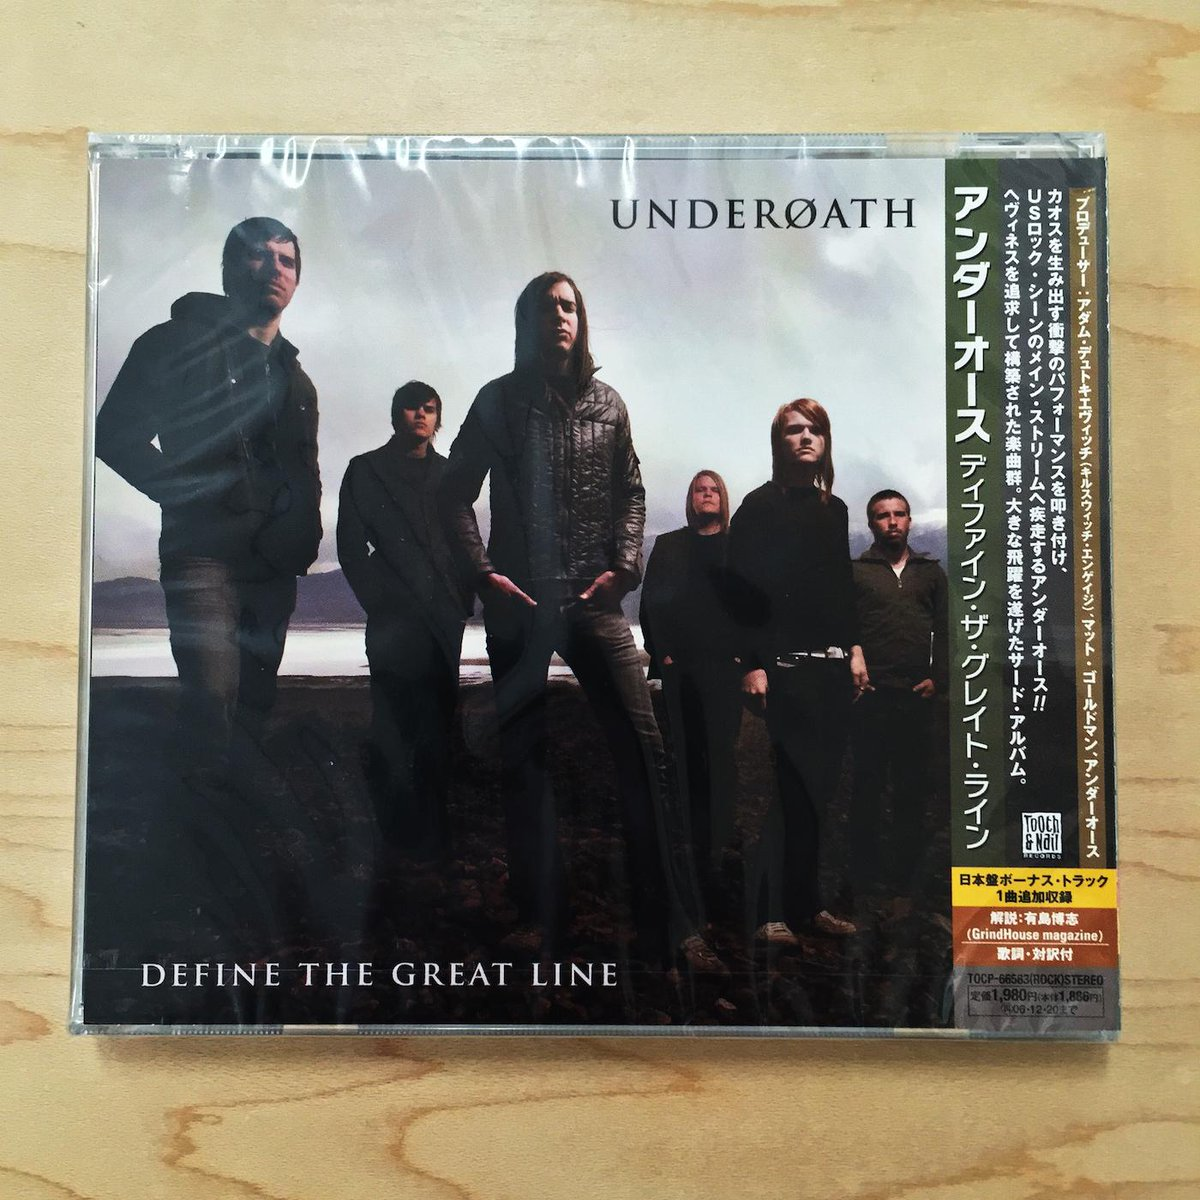 OK, here's a good one. Retweet (& Follow) for a shot to win this @UnderoathBand #DefineTheGreatLine JP import CD! http://t.co/3qFwuPbNoK